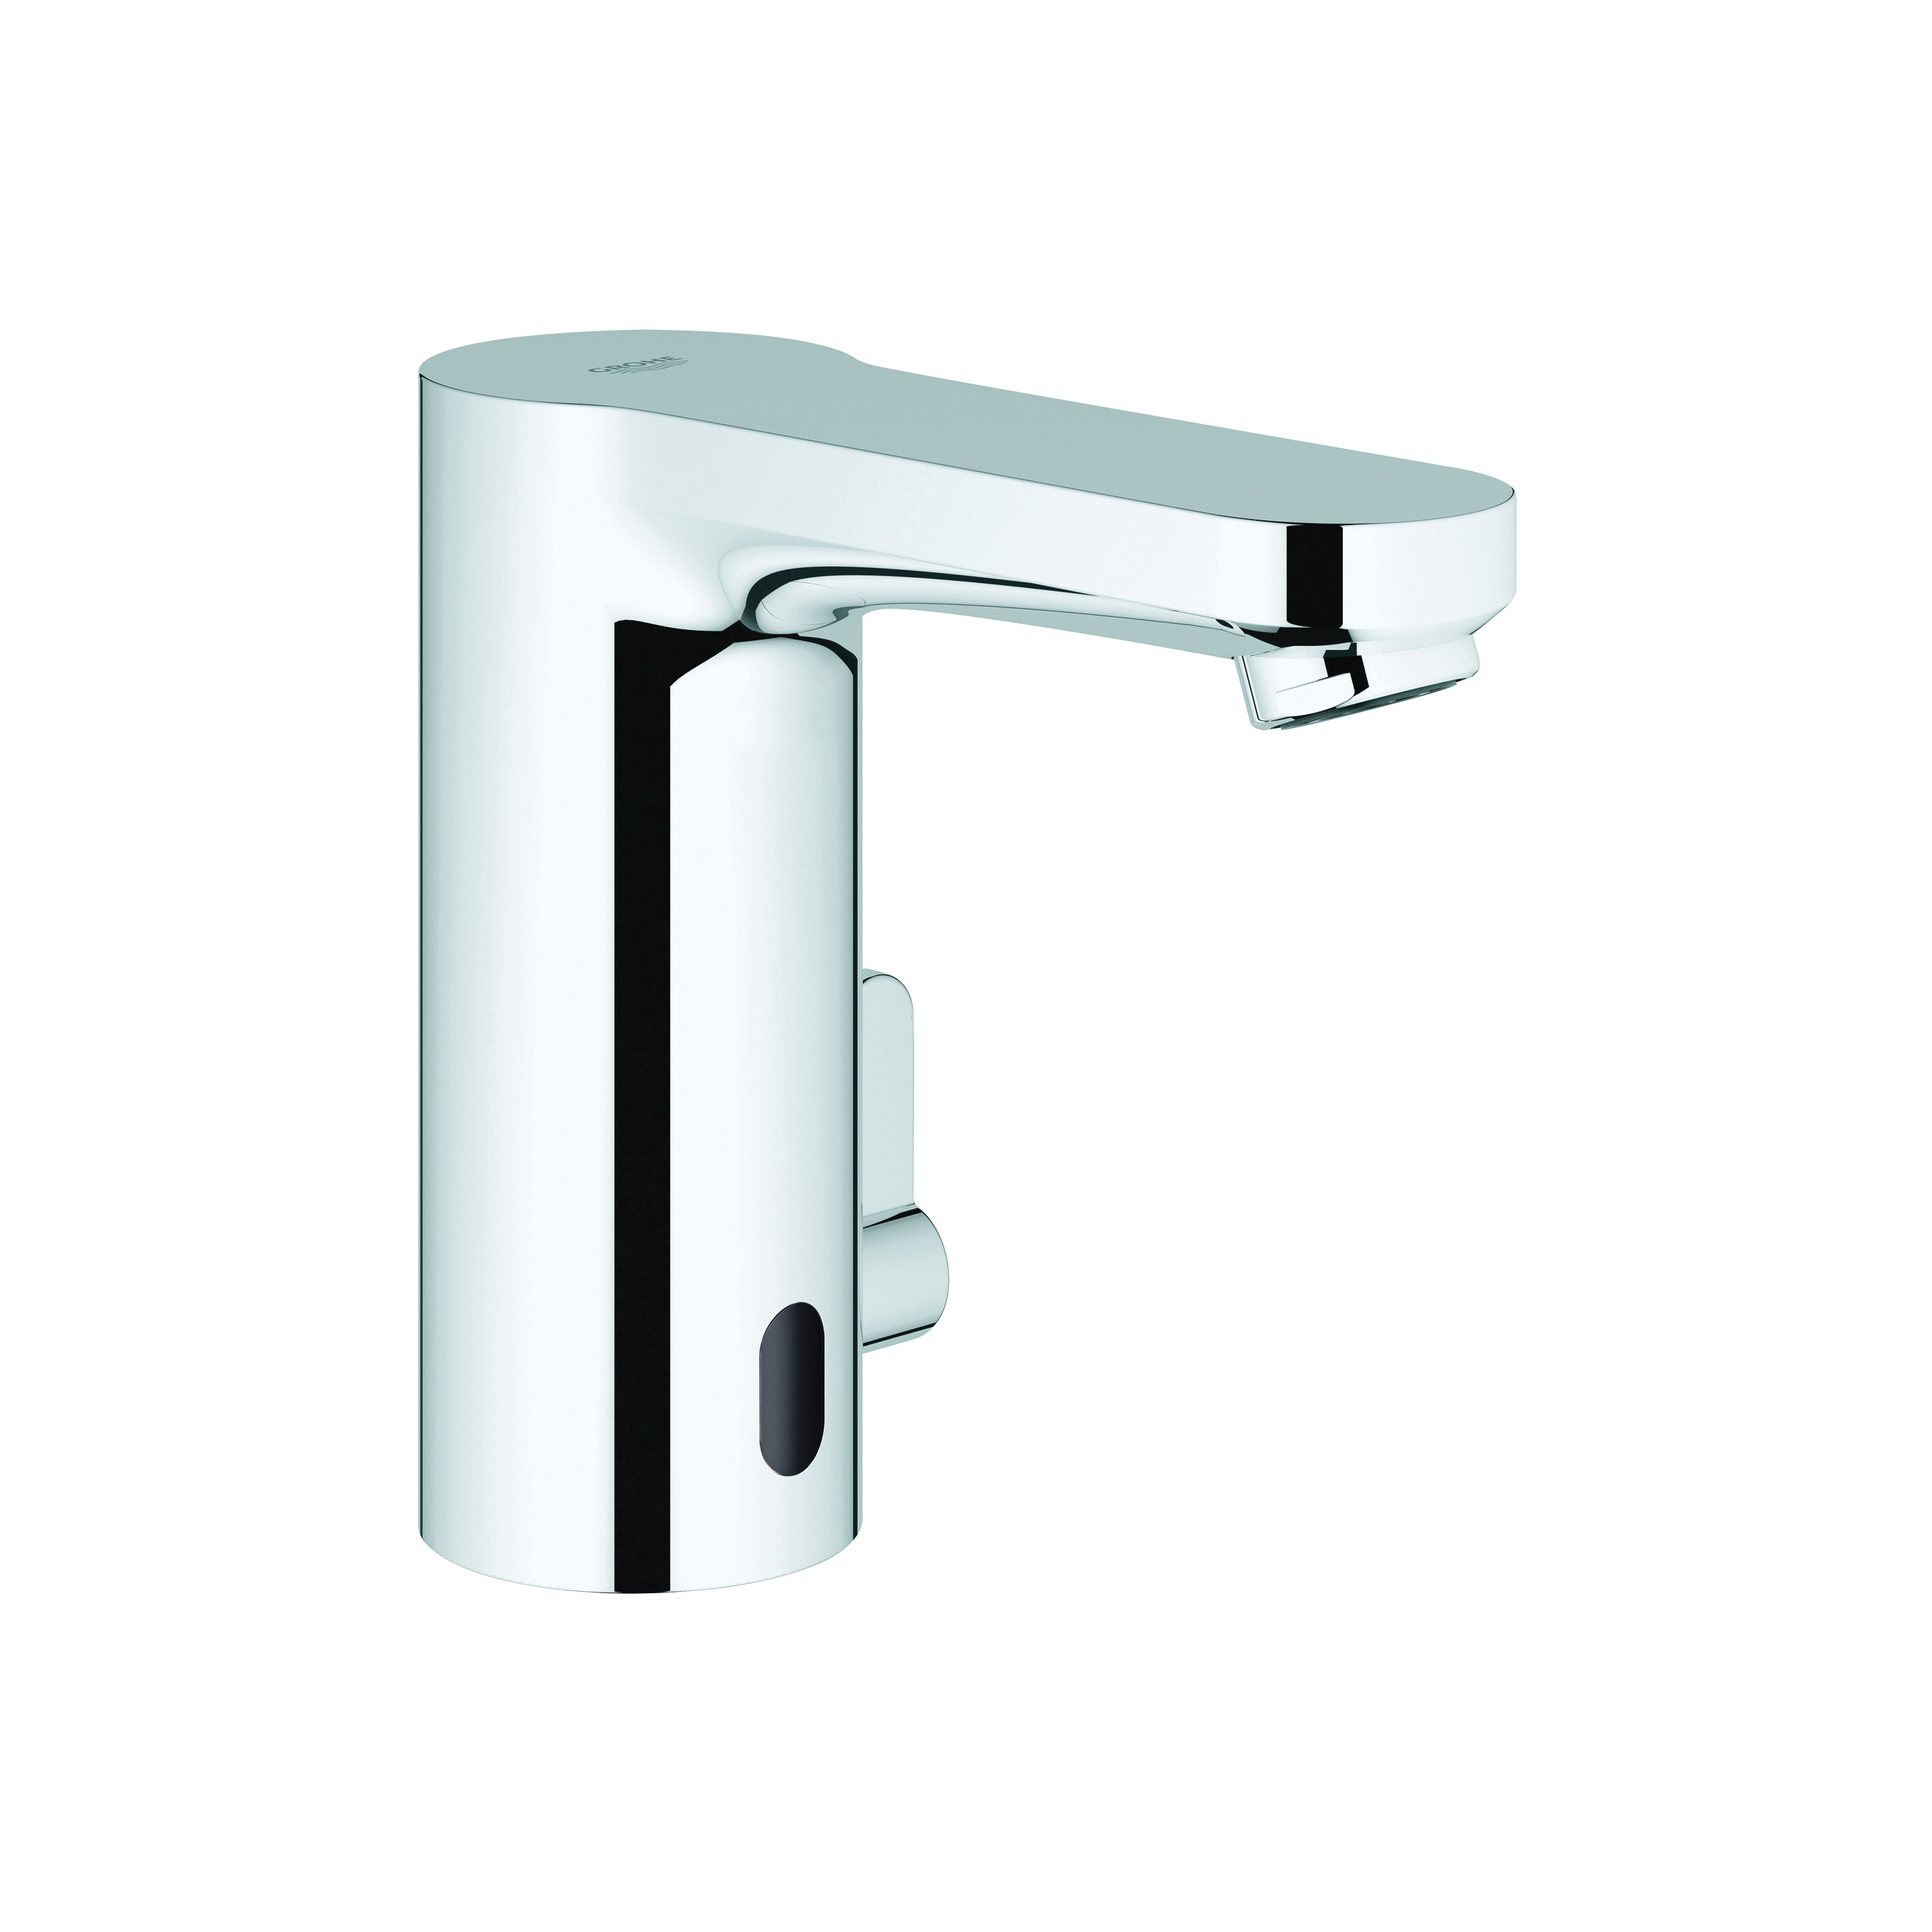 GROHE 36328000 Eurosmart Cosmopolitan Touch Free Electronic Faucet With Temperature Control Lever, 0.35 gpm, Chrome Plated, Lithium Battery, Import